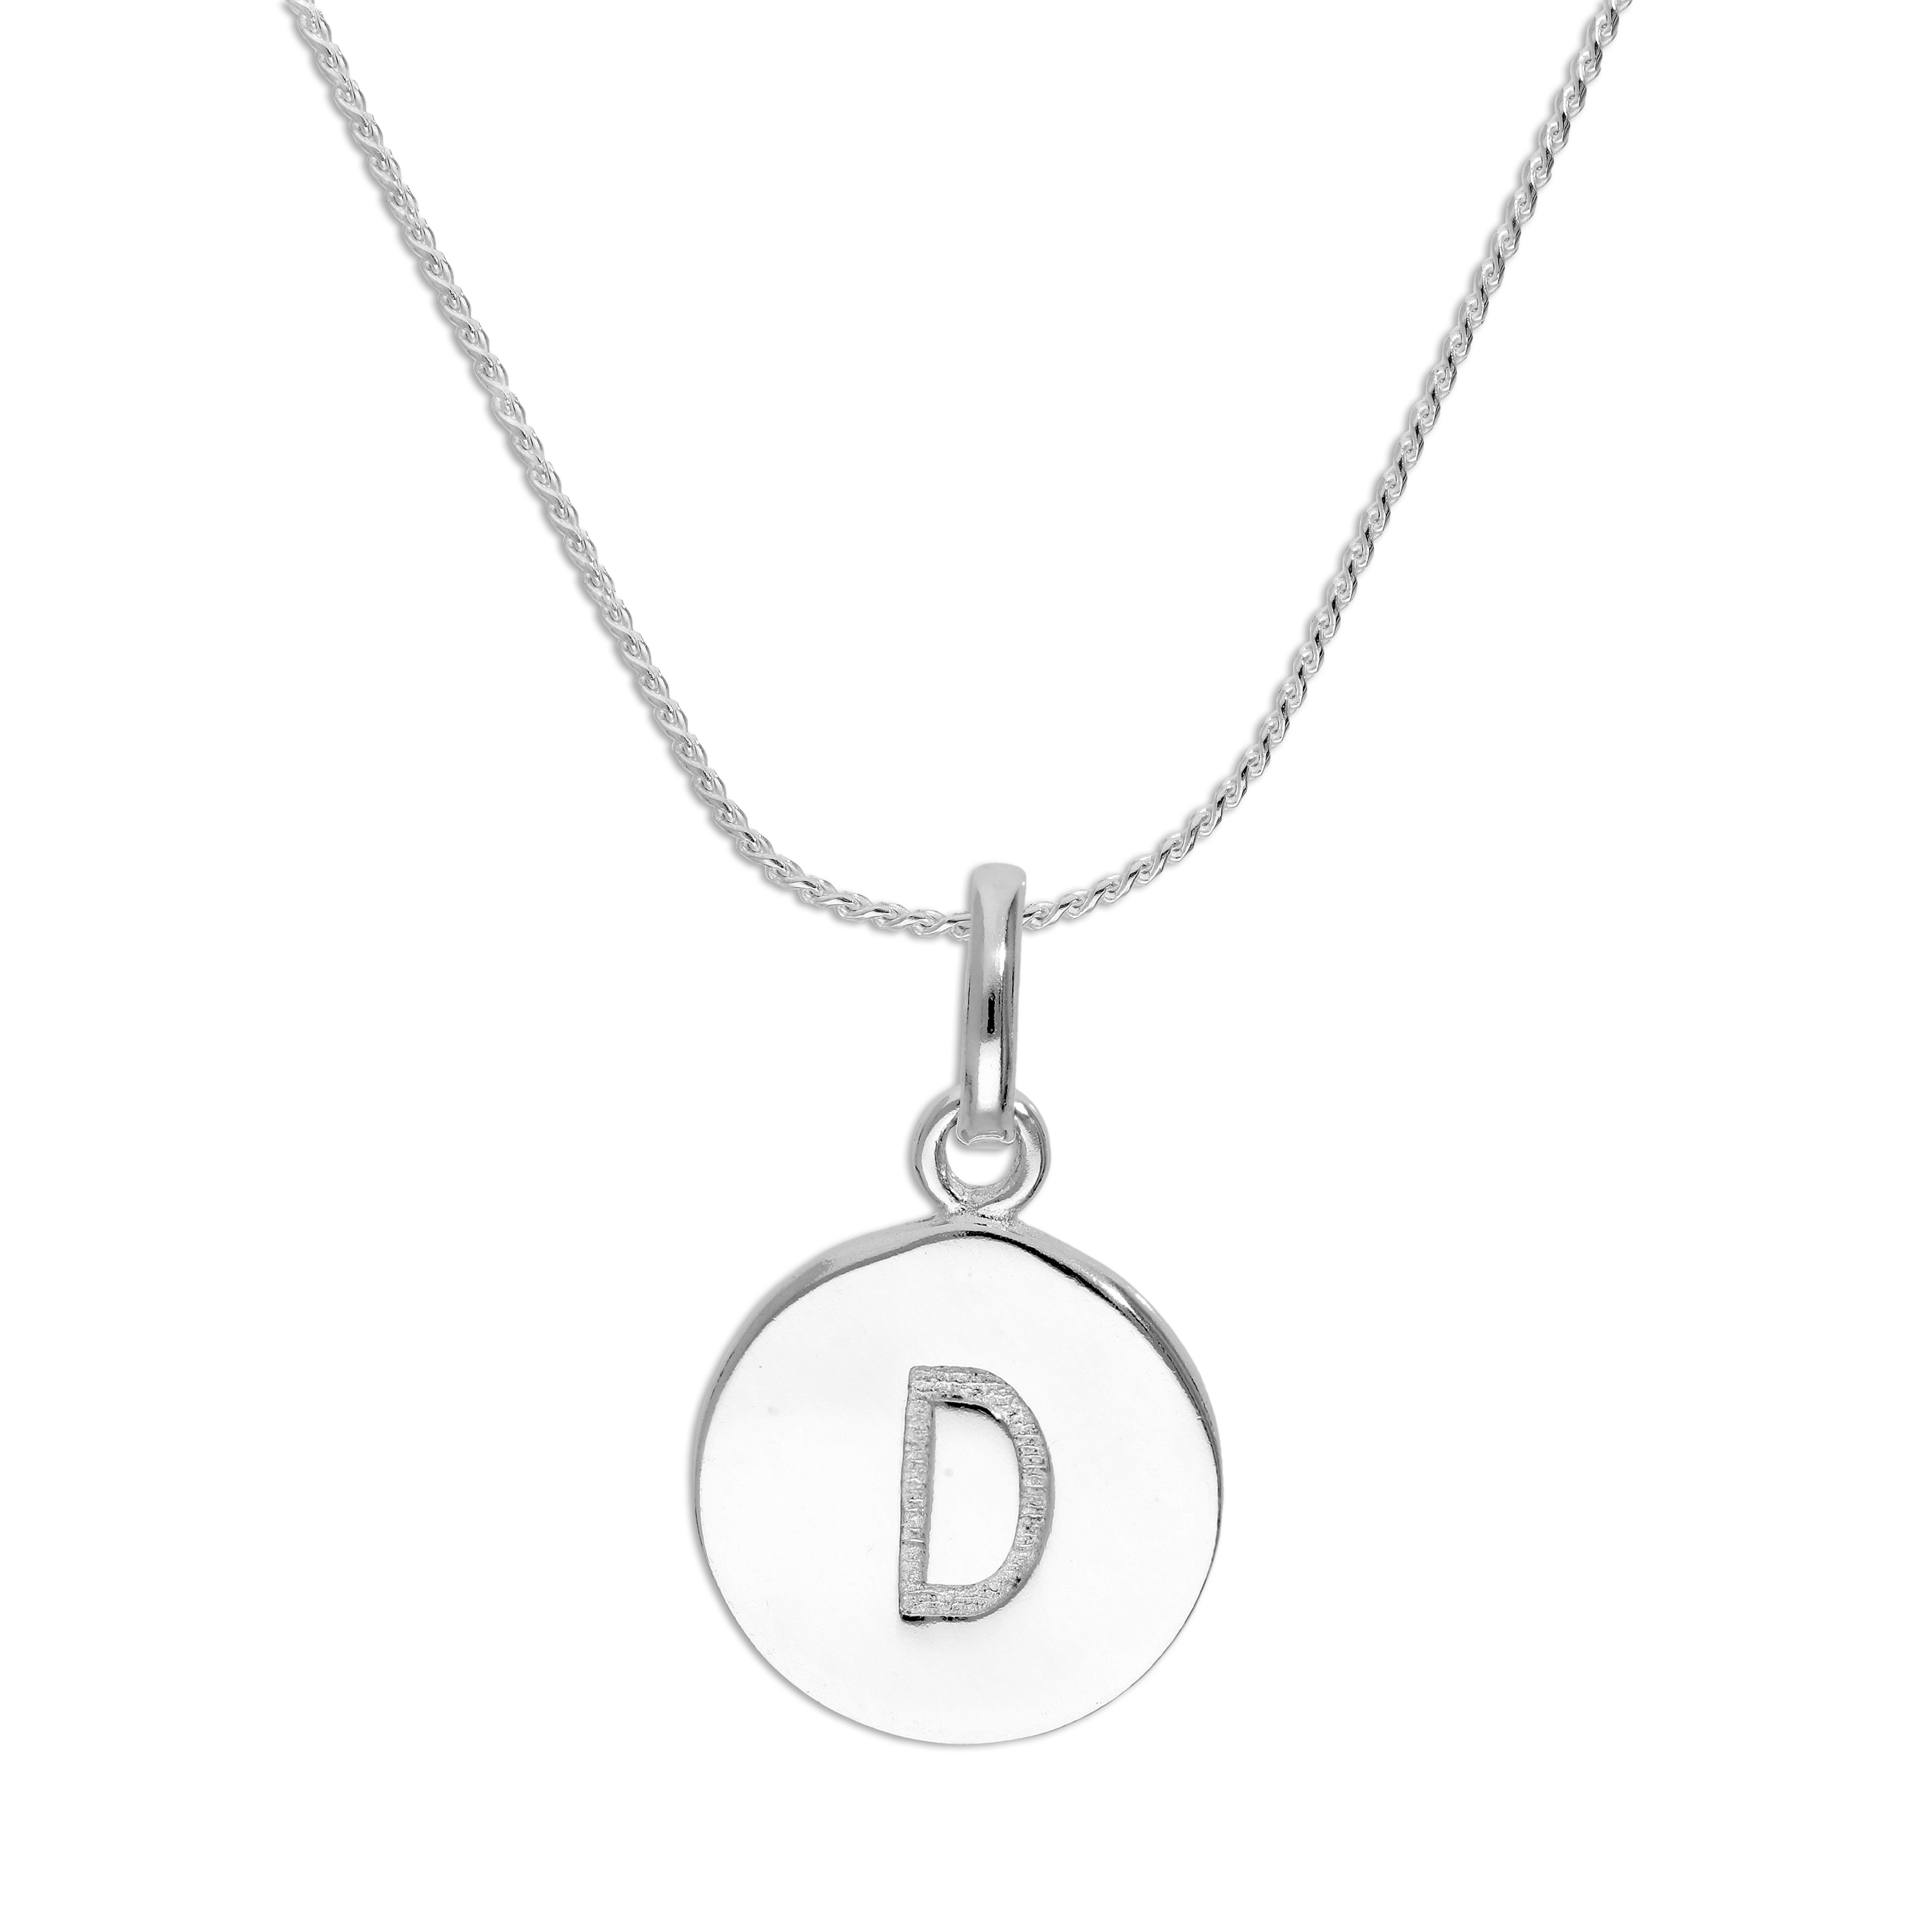 An image of Sterling Silver Initial Letter D Necklace 16 Inches Blue